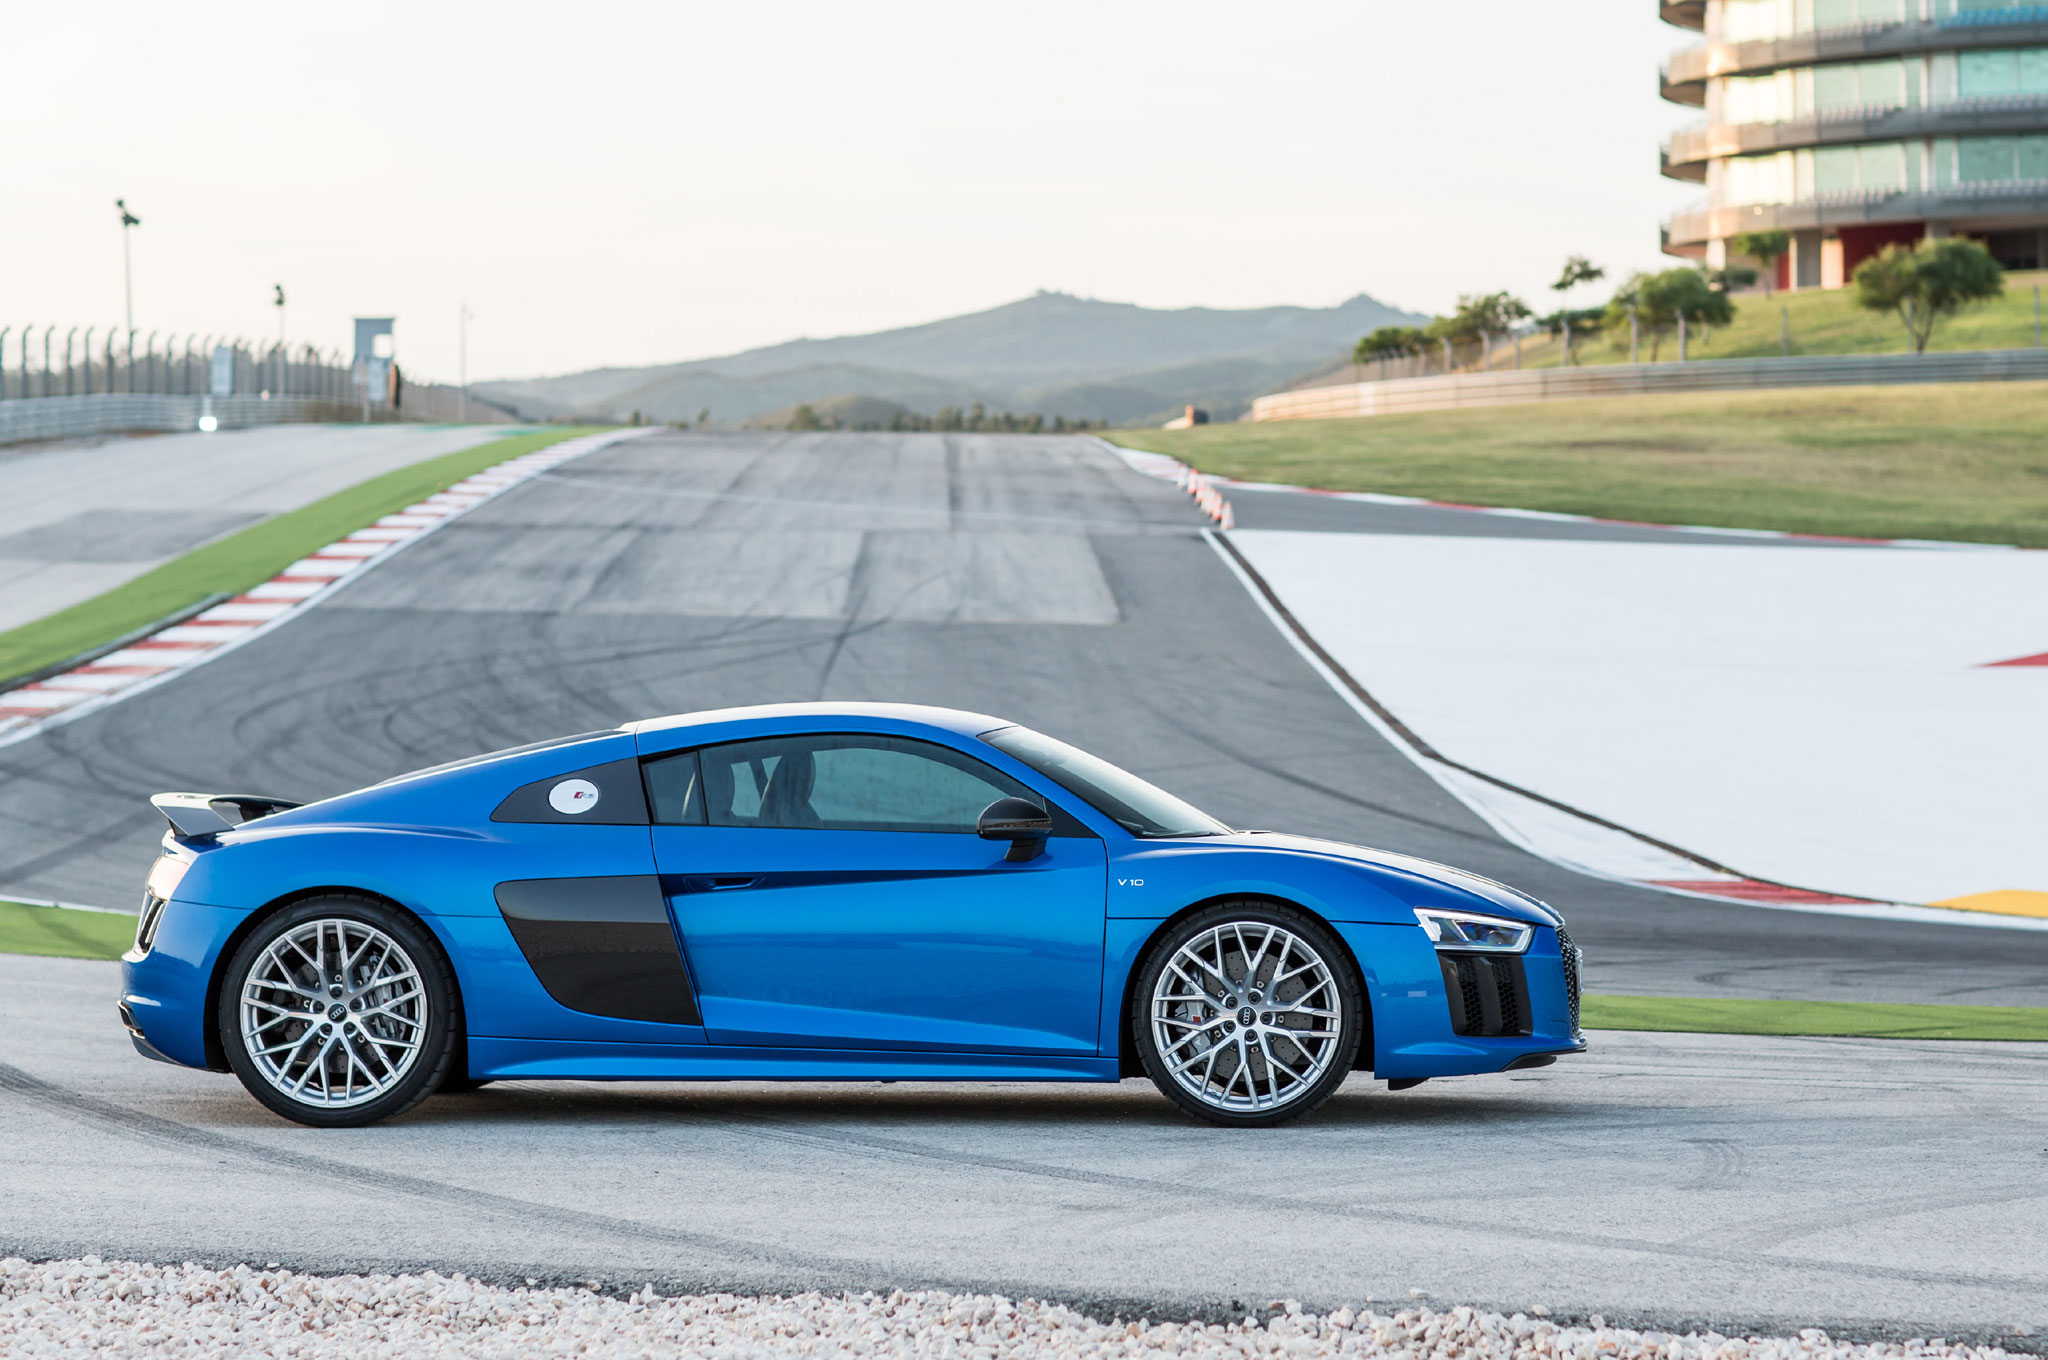 Audi r8 v10 plus 2014 top speed 12